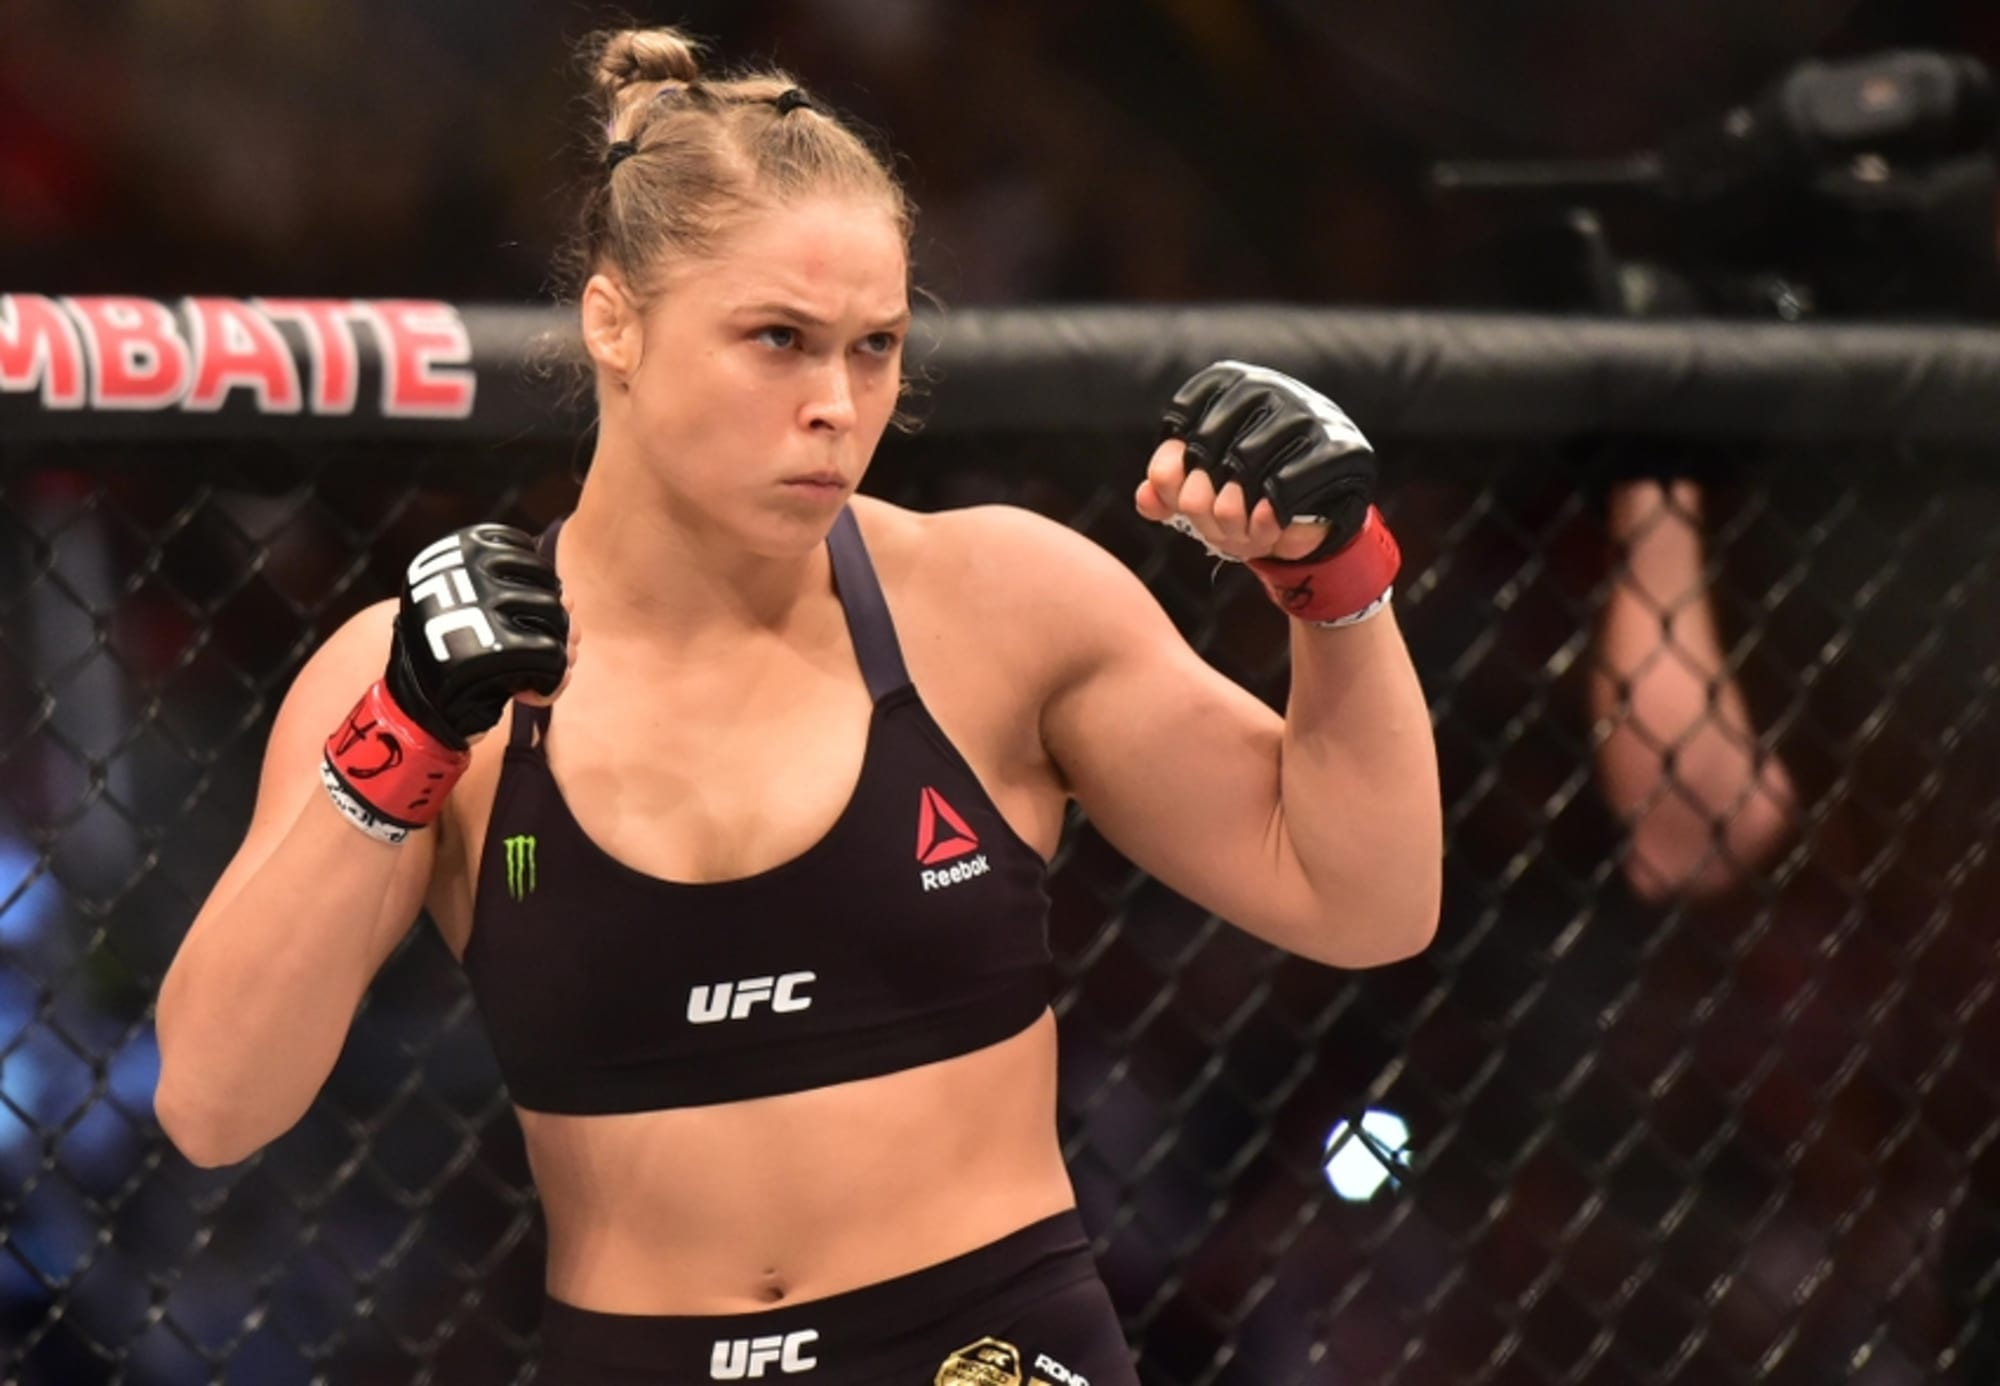 Ufc 193 5 Keys To Victory For Ronda Rousey